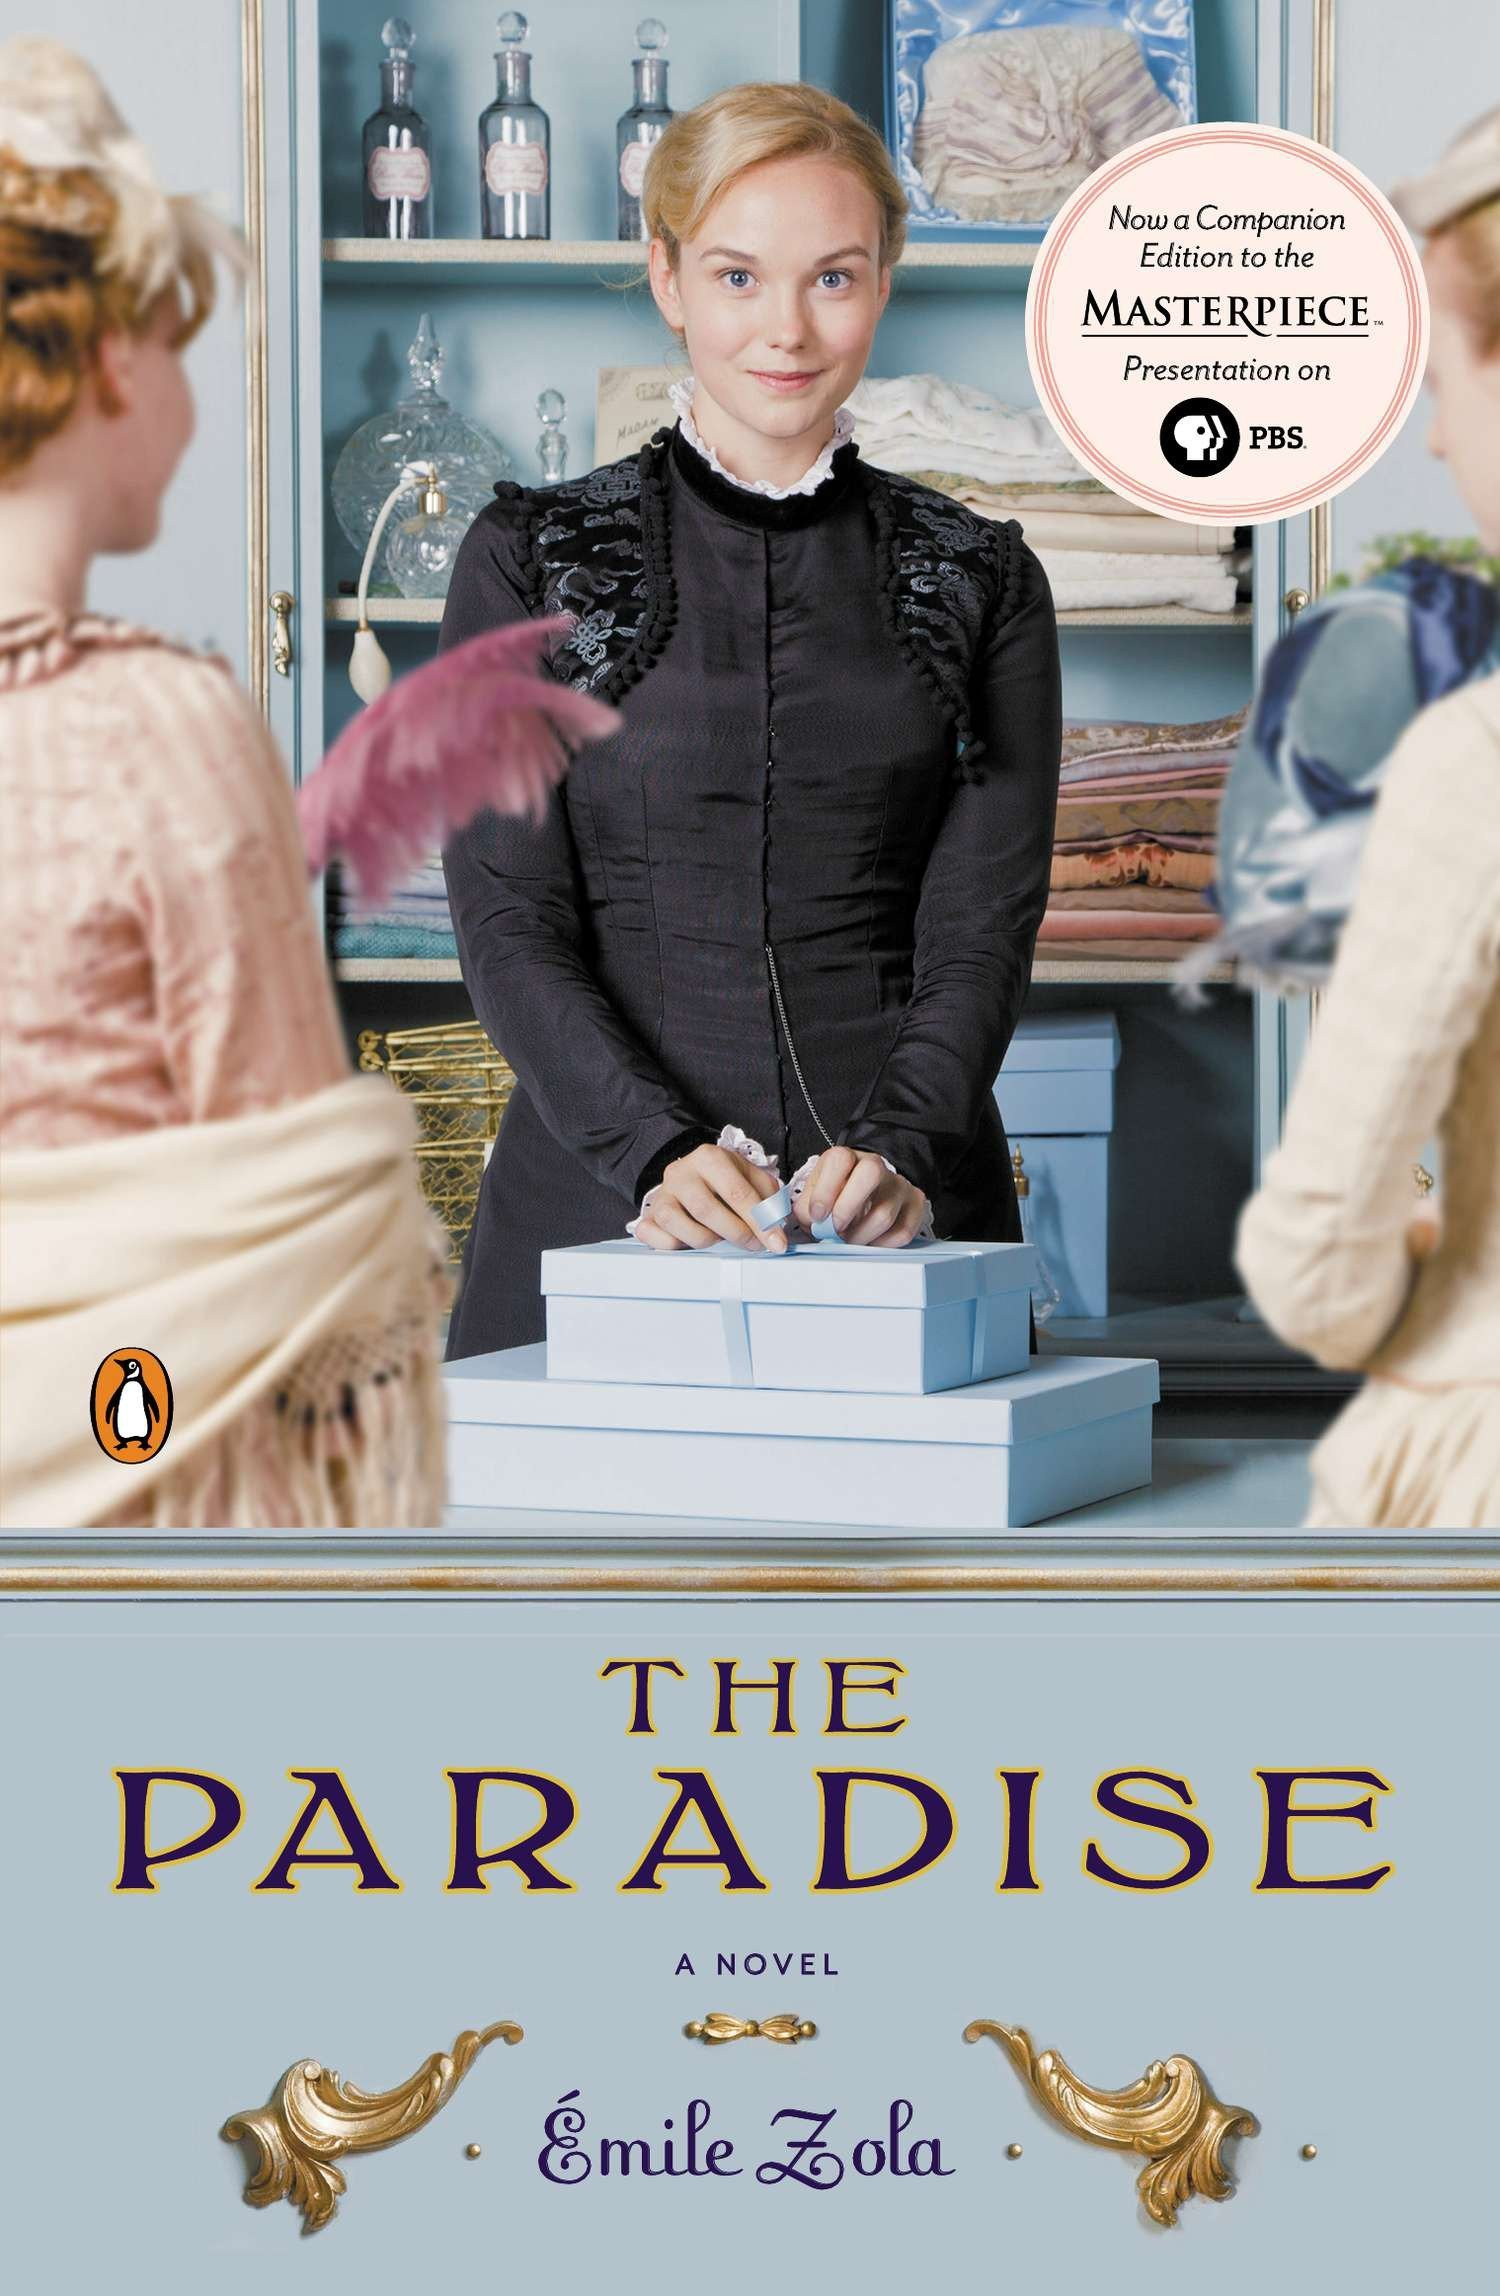 The Paradise: A Novel by Émile Zola